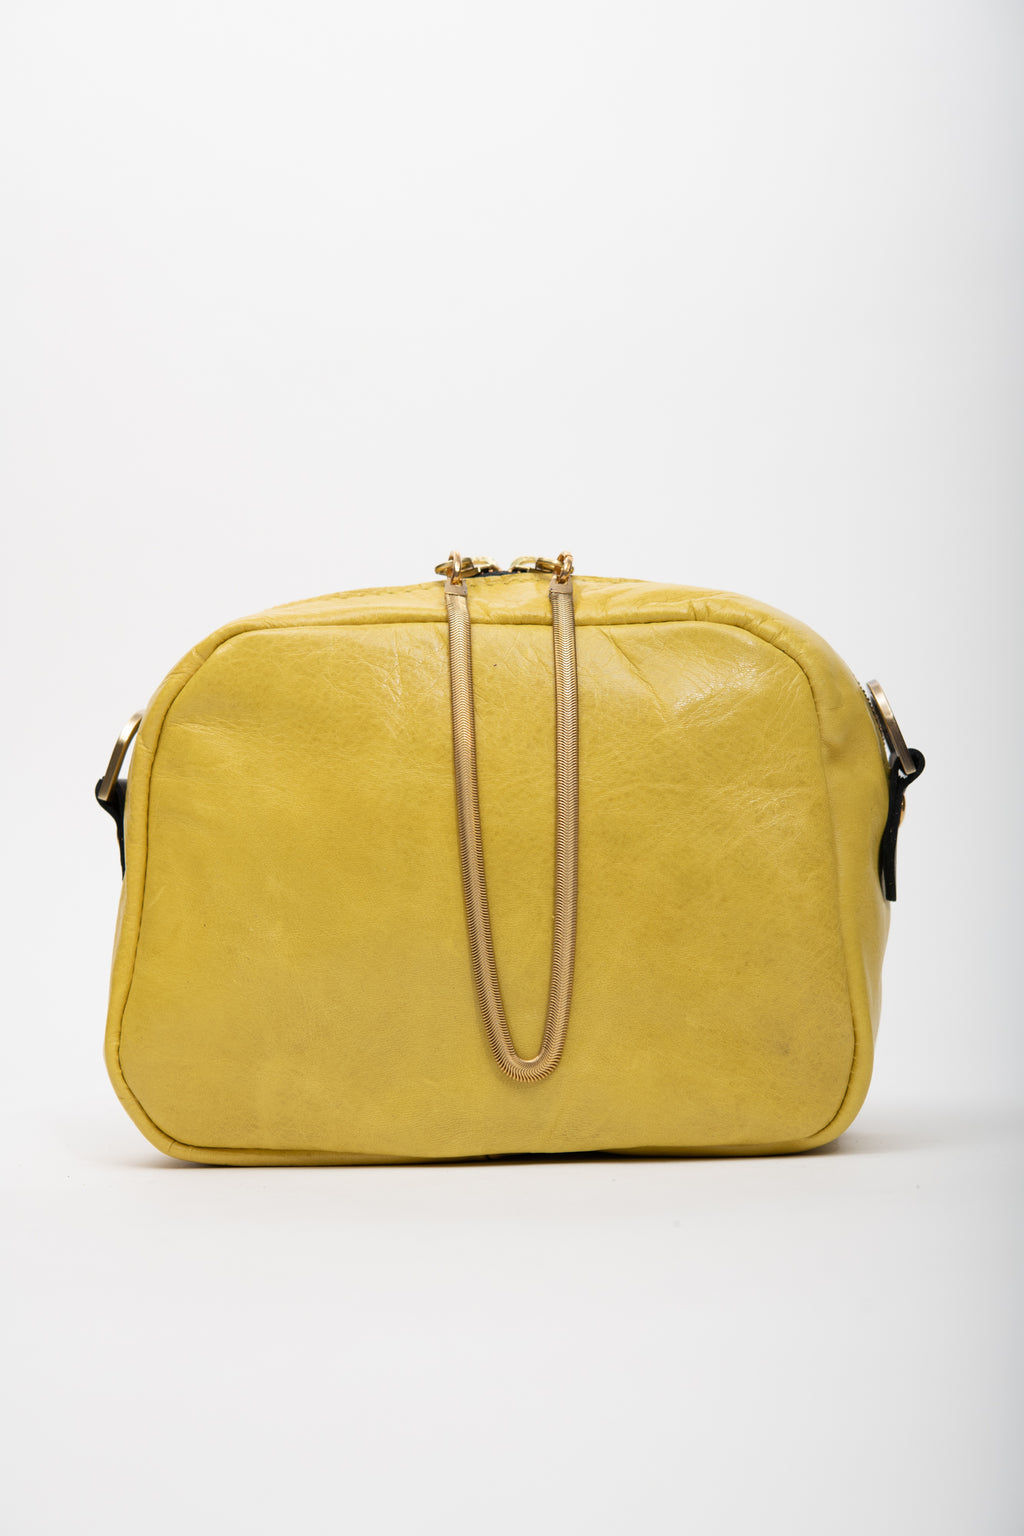 Veinage Yellow leather crossbody bag and brass charm CARTIER model